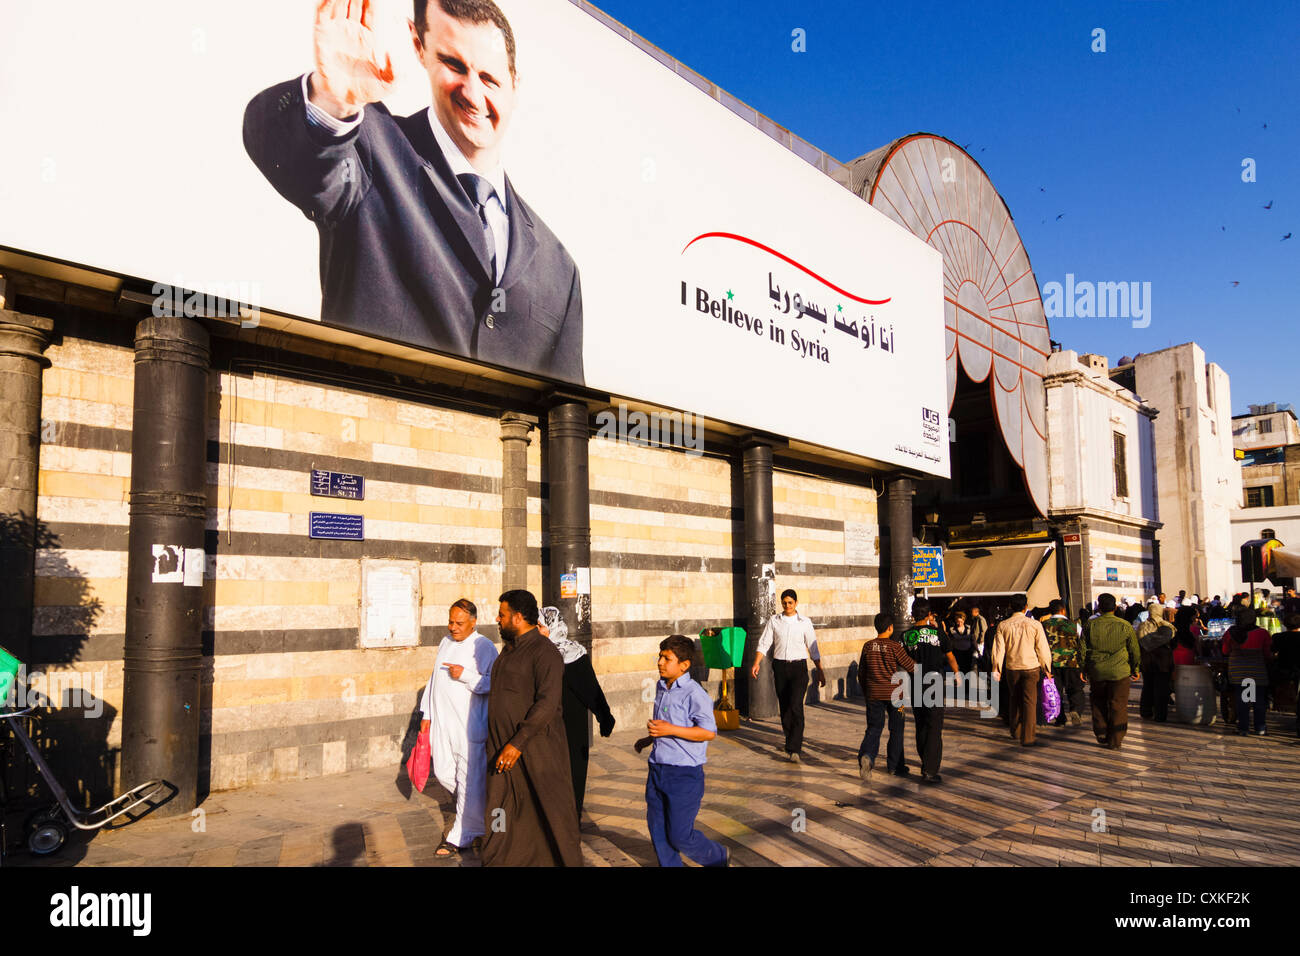 Bashar al-Assad billboard poster by Al Hamadiyya Souq entrance. Damascus, Syria - Stock Image